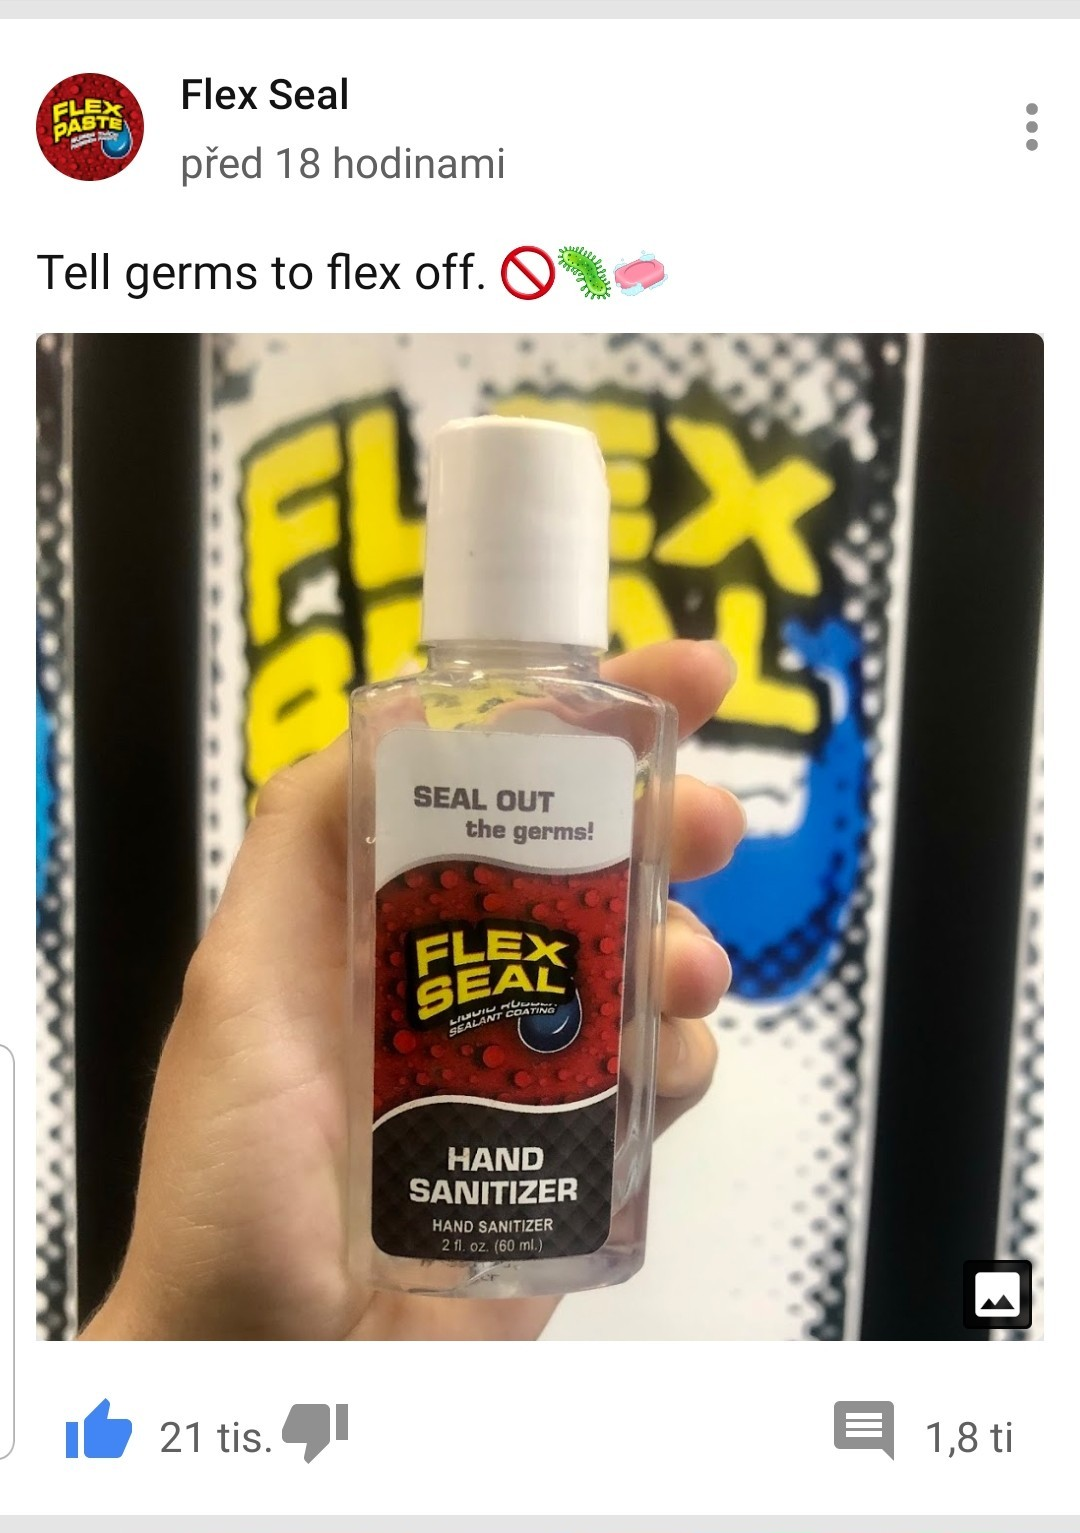 To show you the power of flex seal... - meme